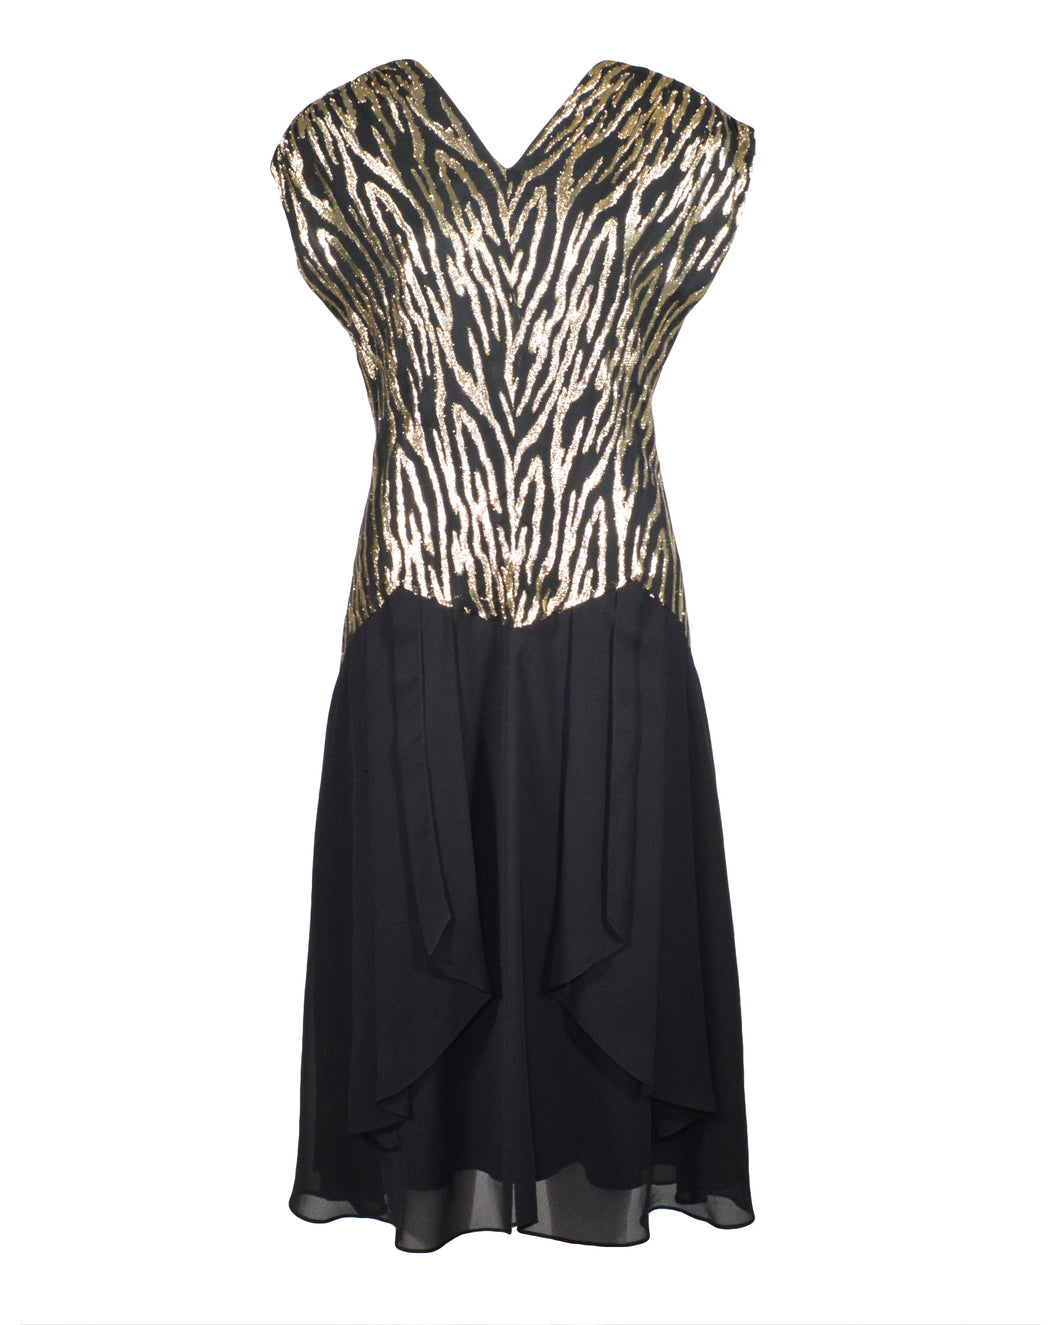 TIGER DRESS - WOMEN'S SIZE M/L